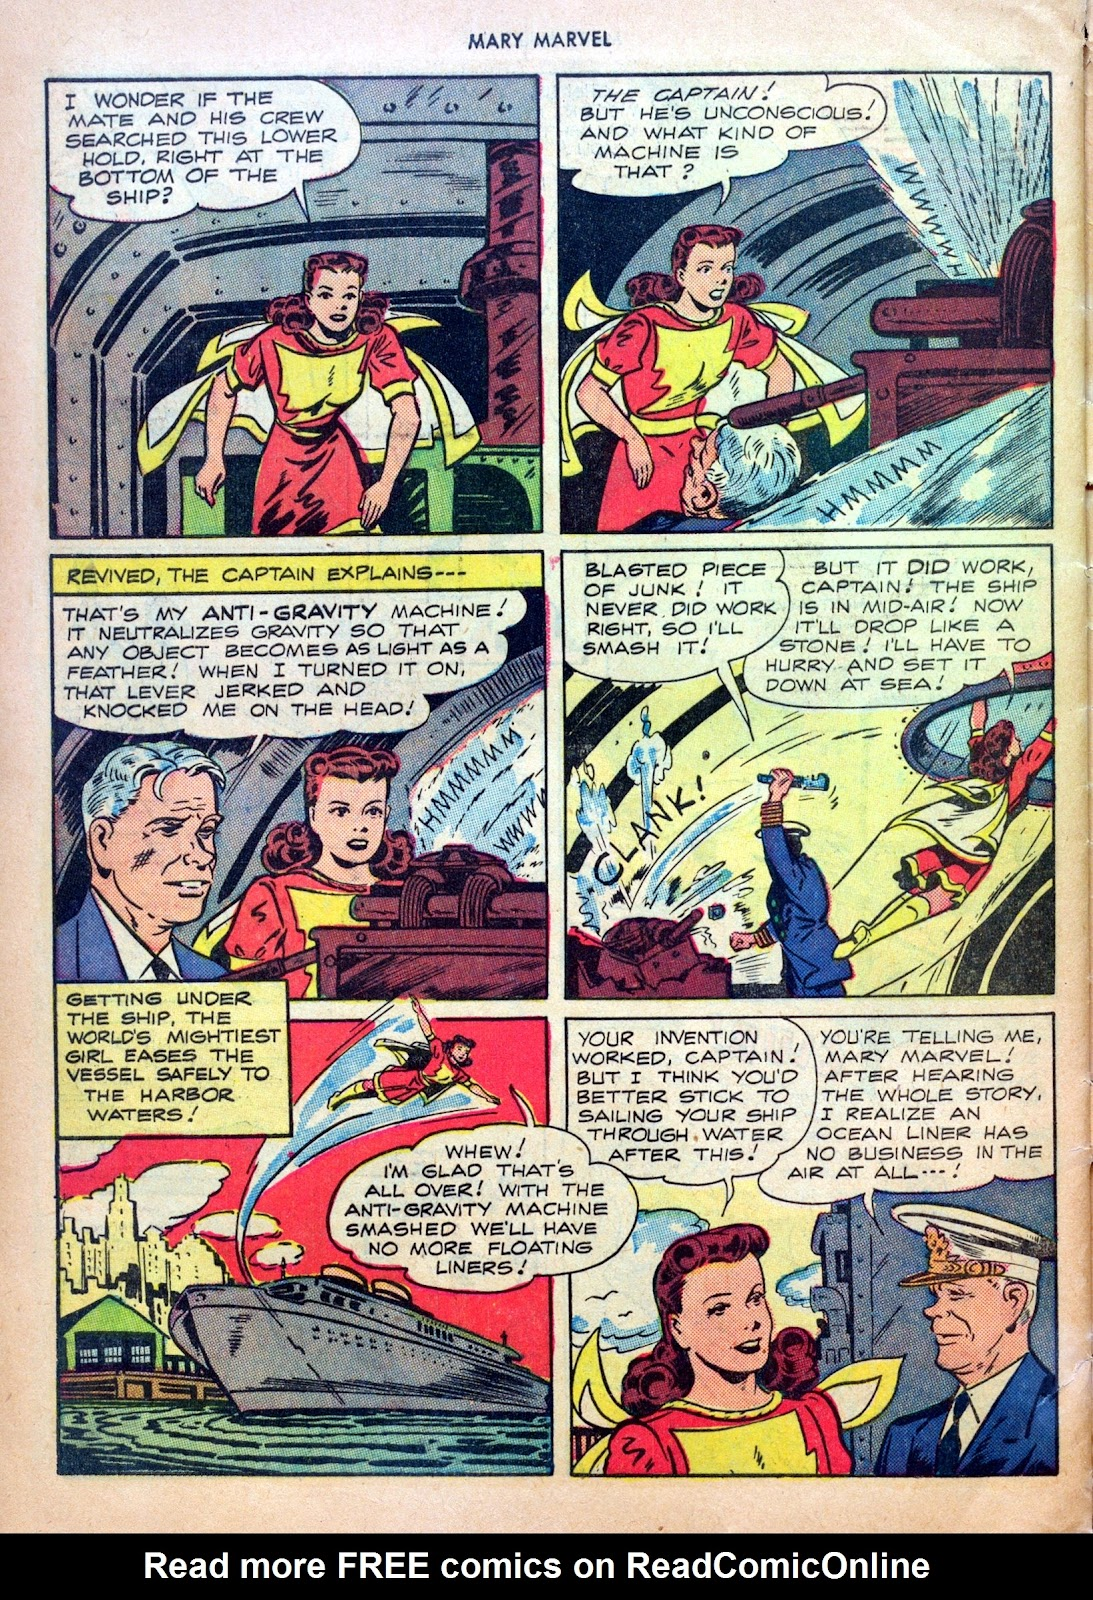 Read online Mary Marvel comic -  Issue #27 - 32